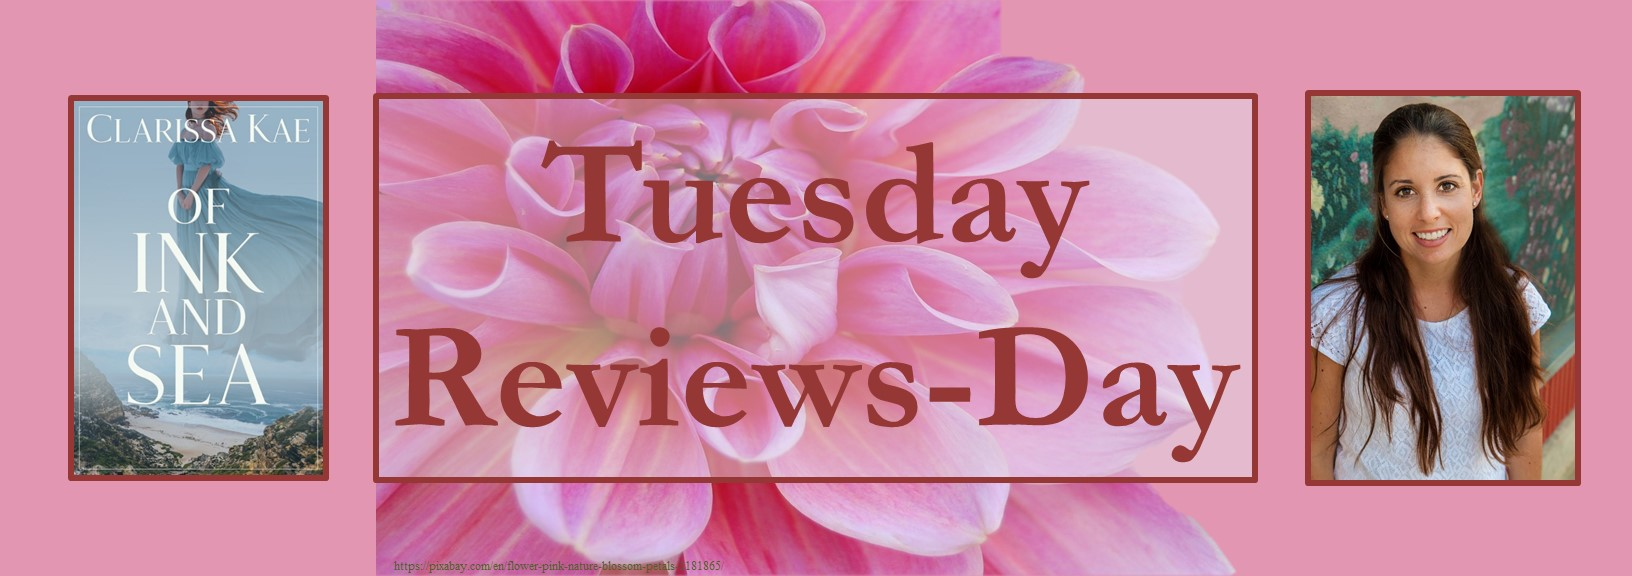 012321 - ink and sea - tuesday reviews day banner